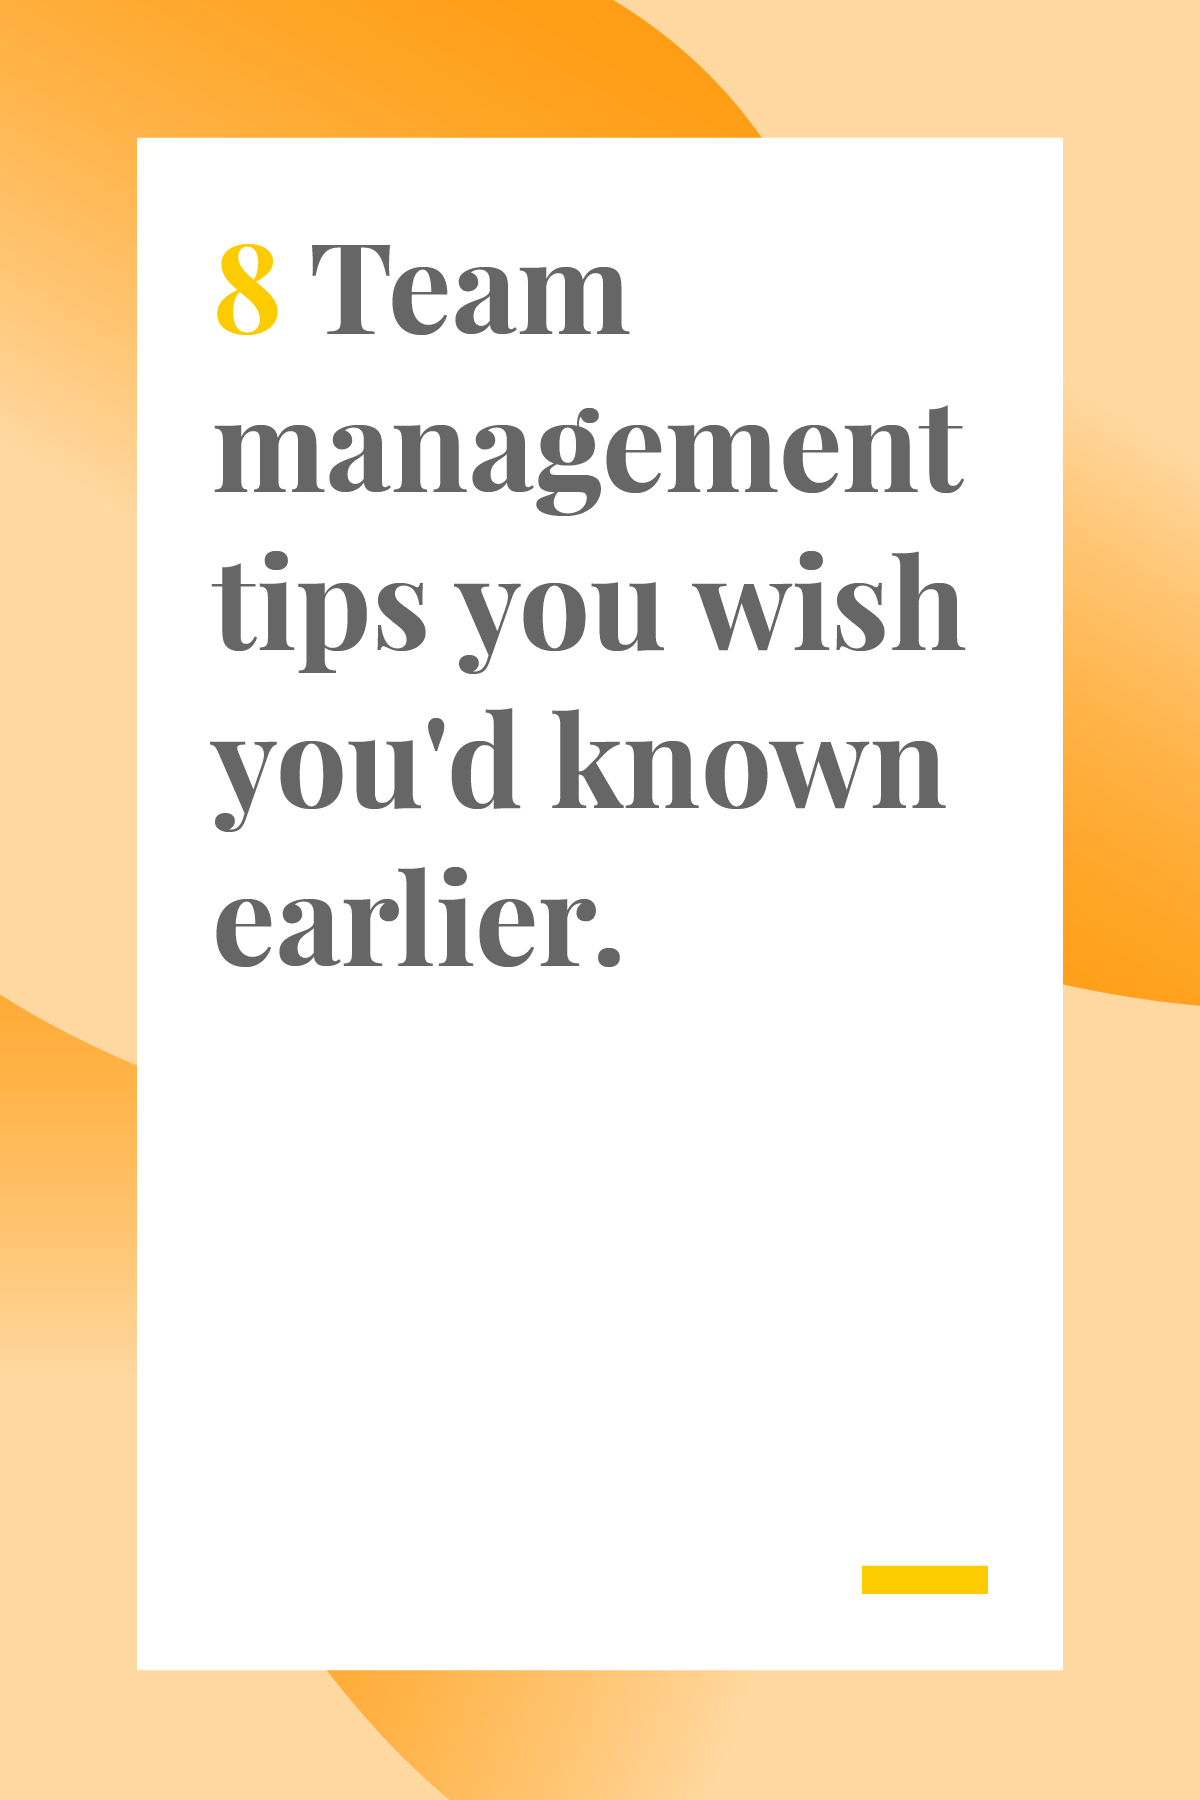 If you're managing a team, these tips and tricks will help you keep everyone organized and motivated. #projectmanagement